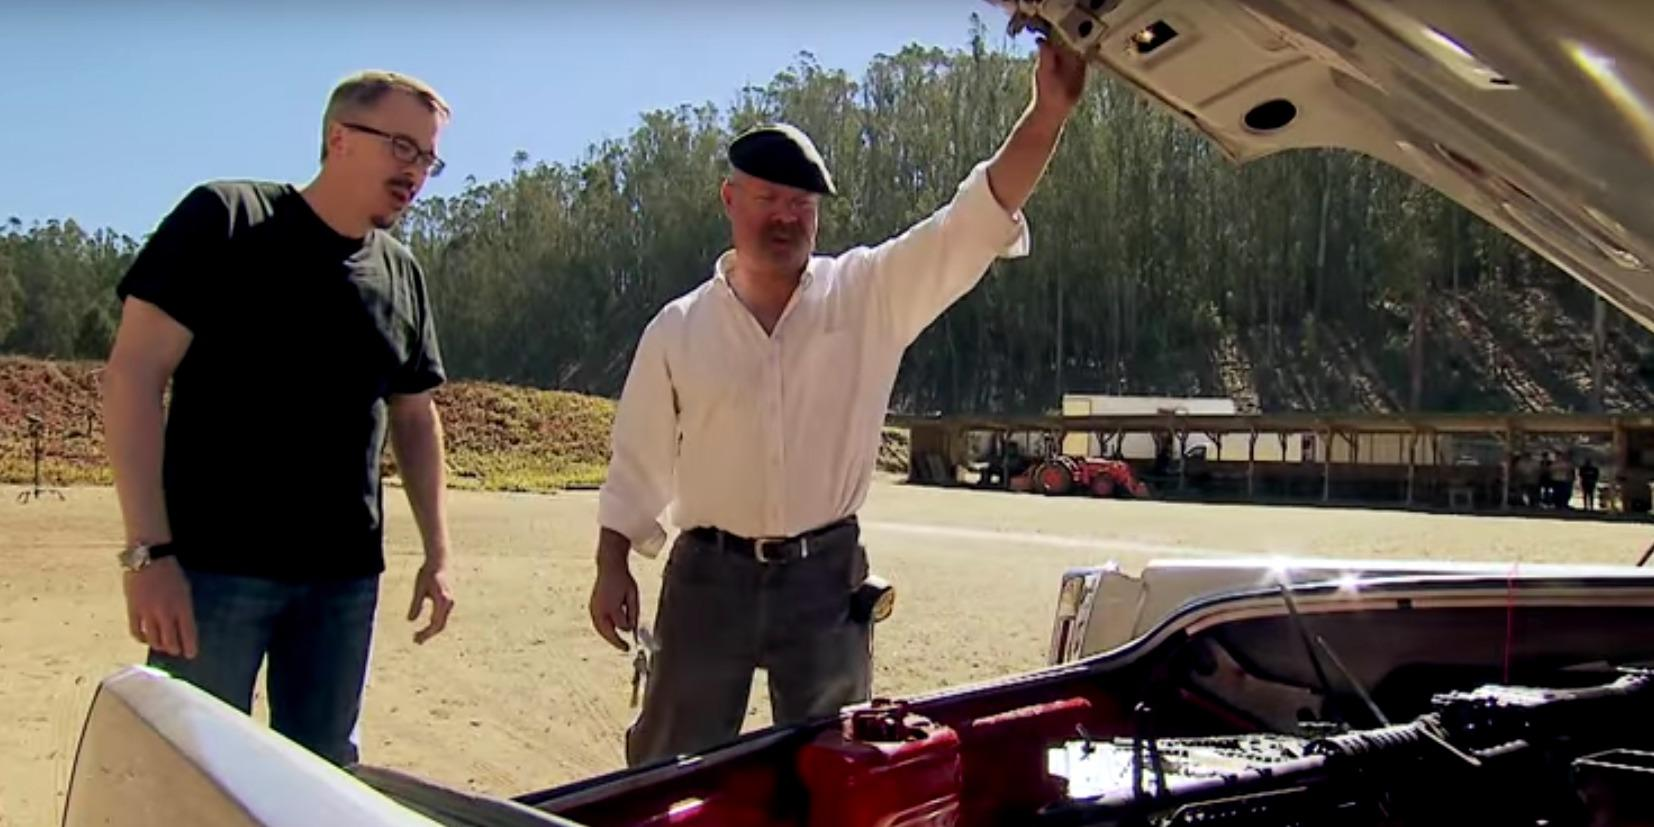 'Mythbusters' built a real rotating machine gun to test out the epic final scene in 'Breaking Bad' — here's how it fared